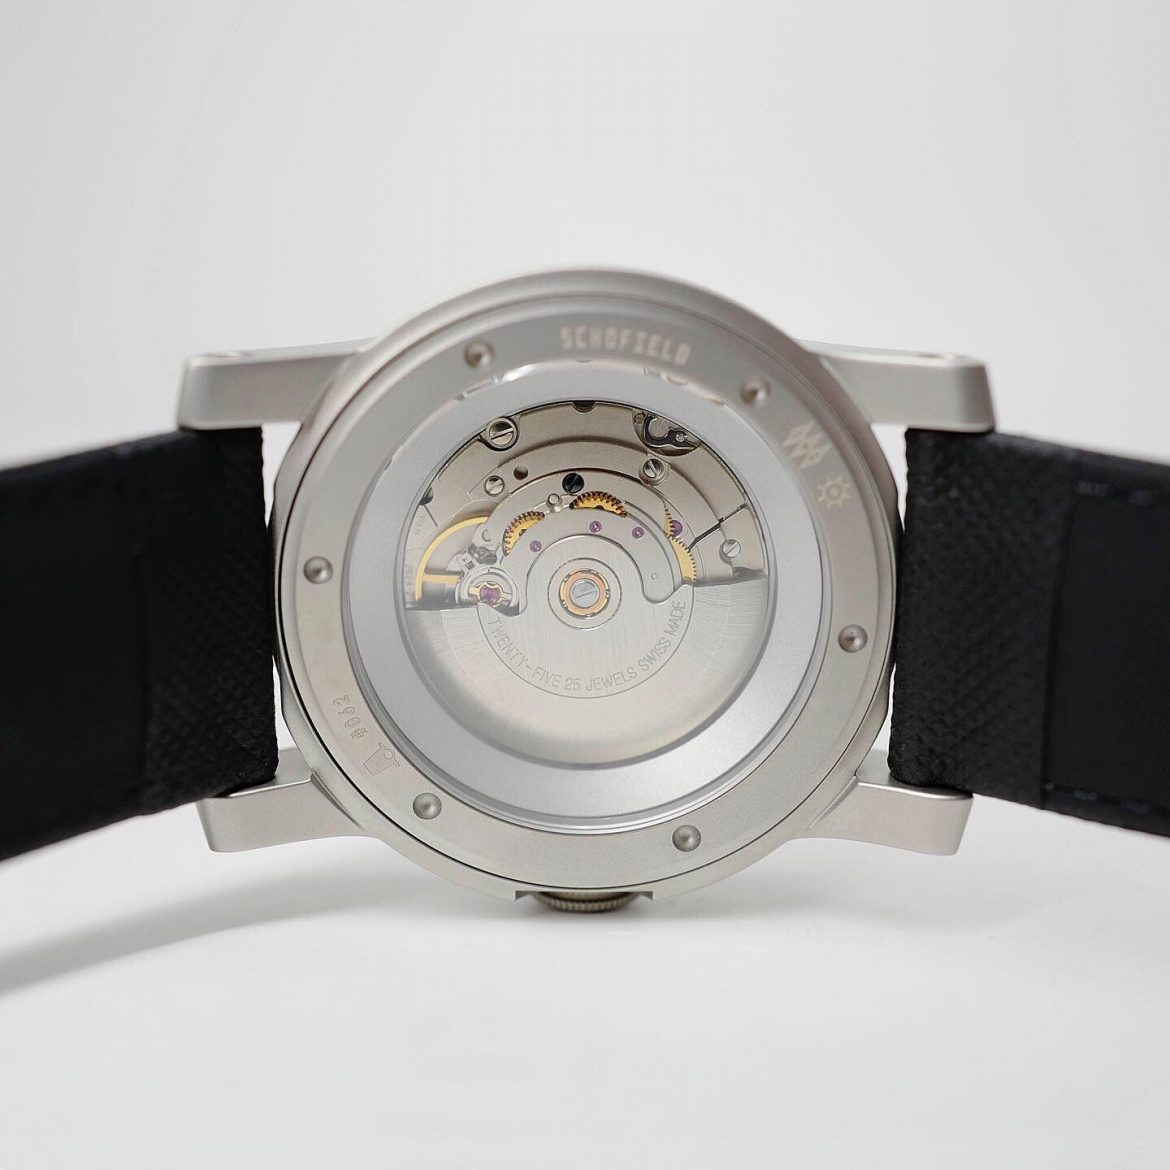 Marker case back cool watches